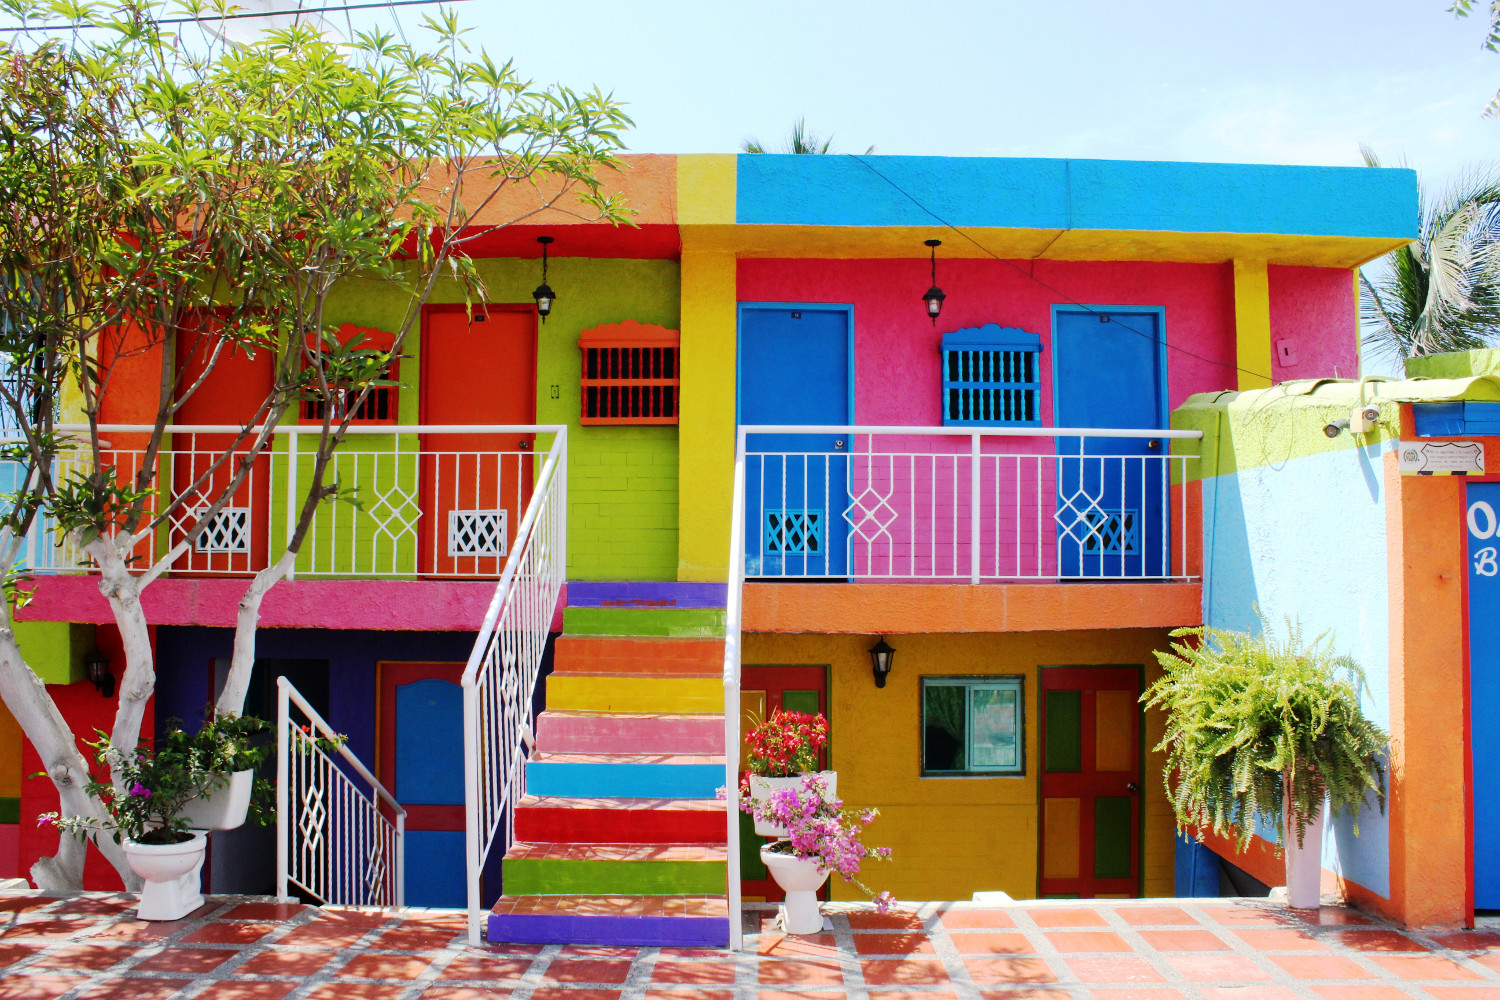 Karibik = Mut zur Farbe | Caribbean = boldness with color